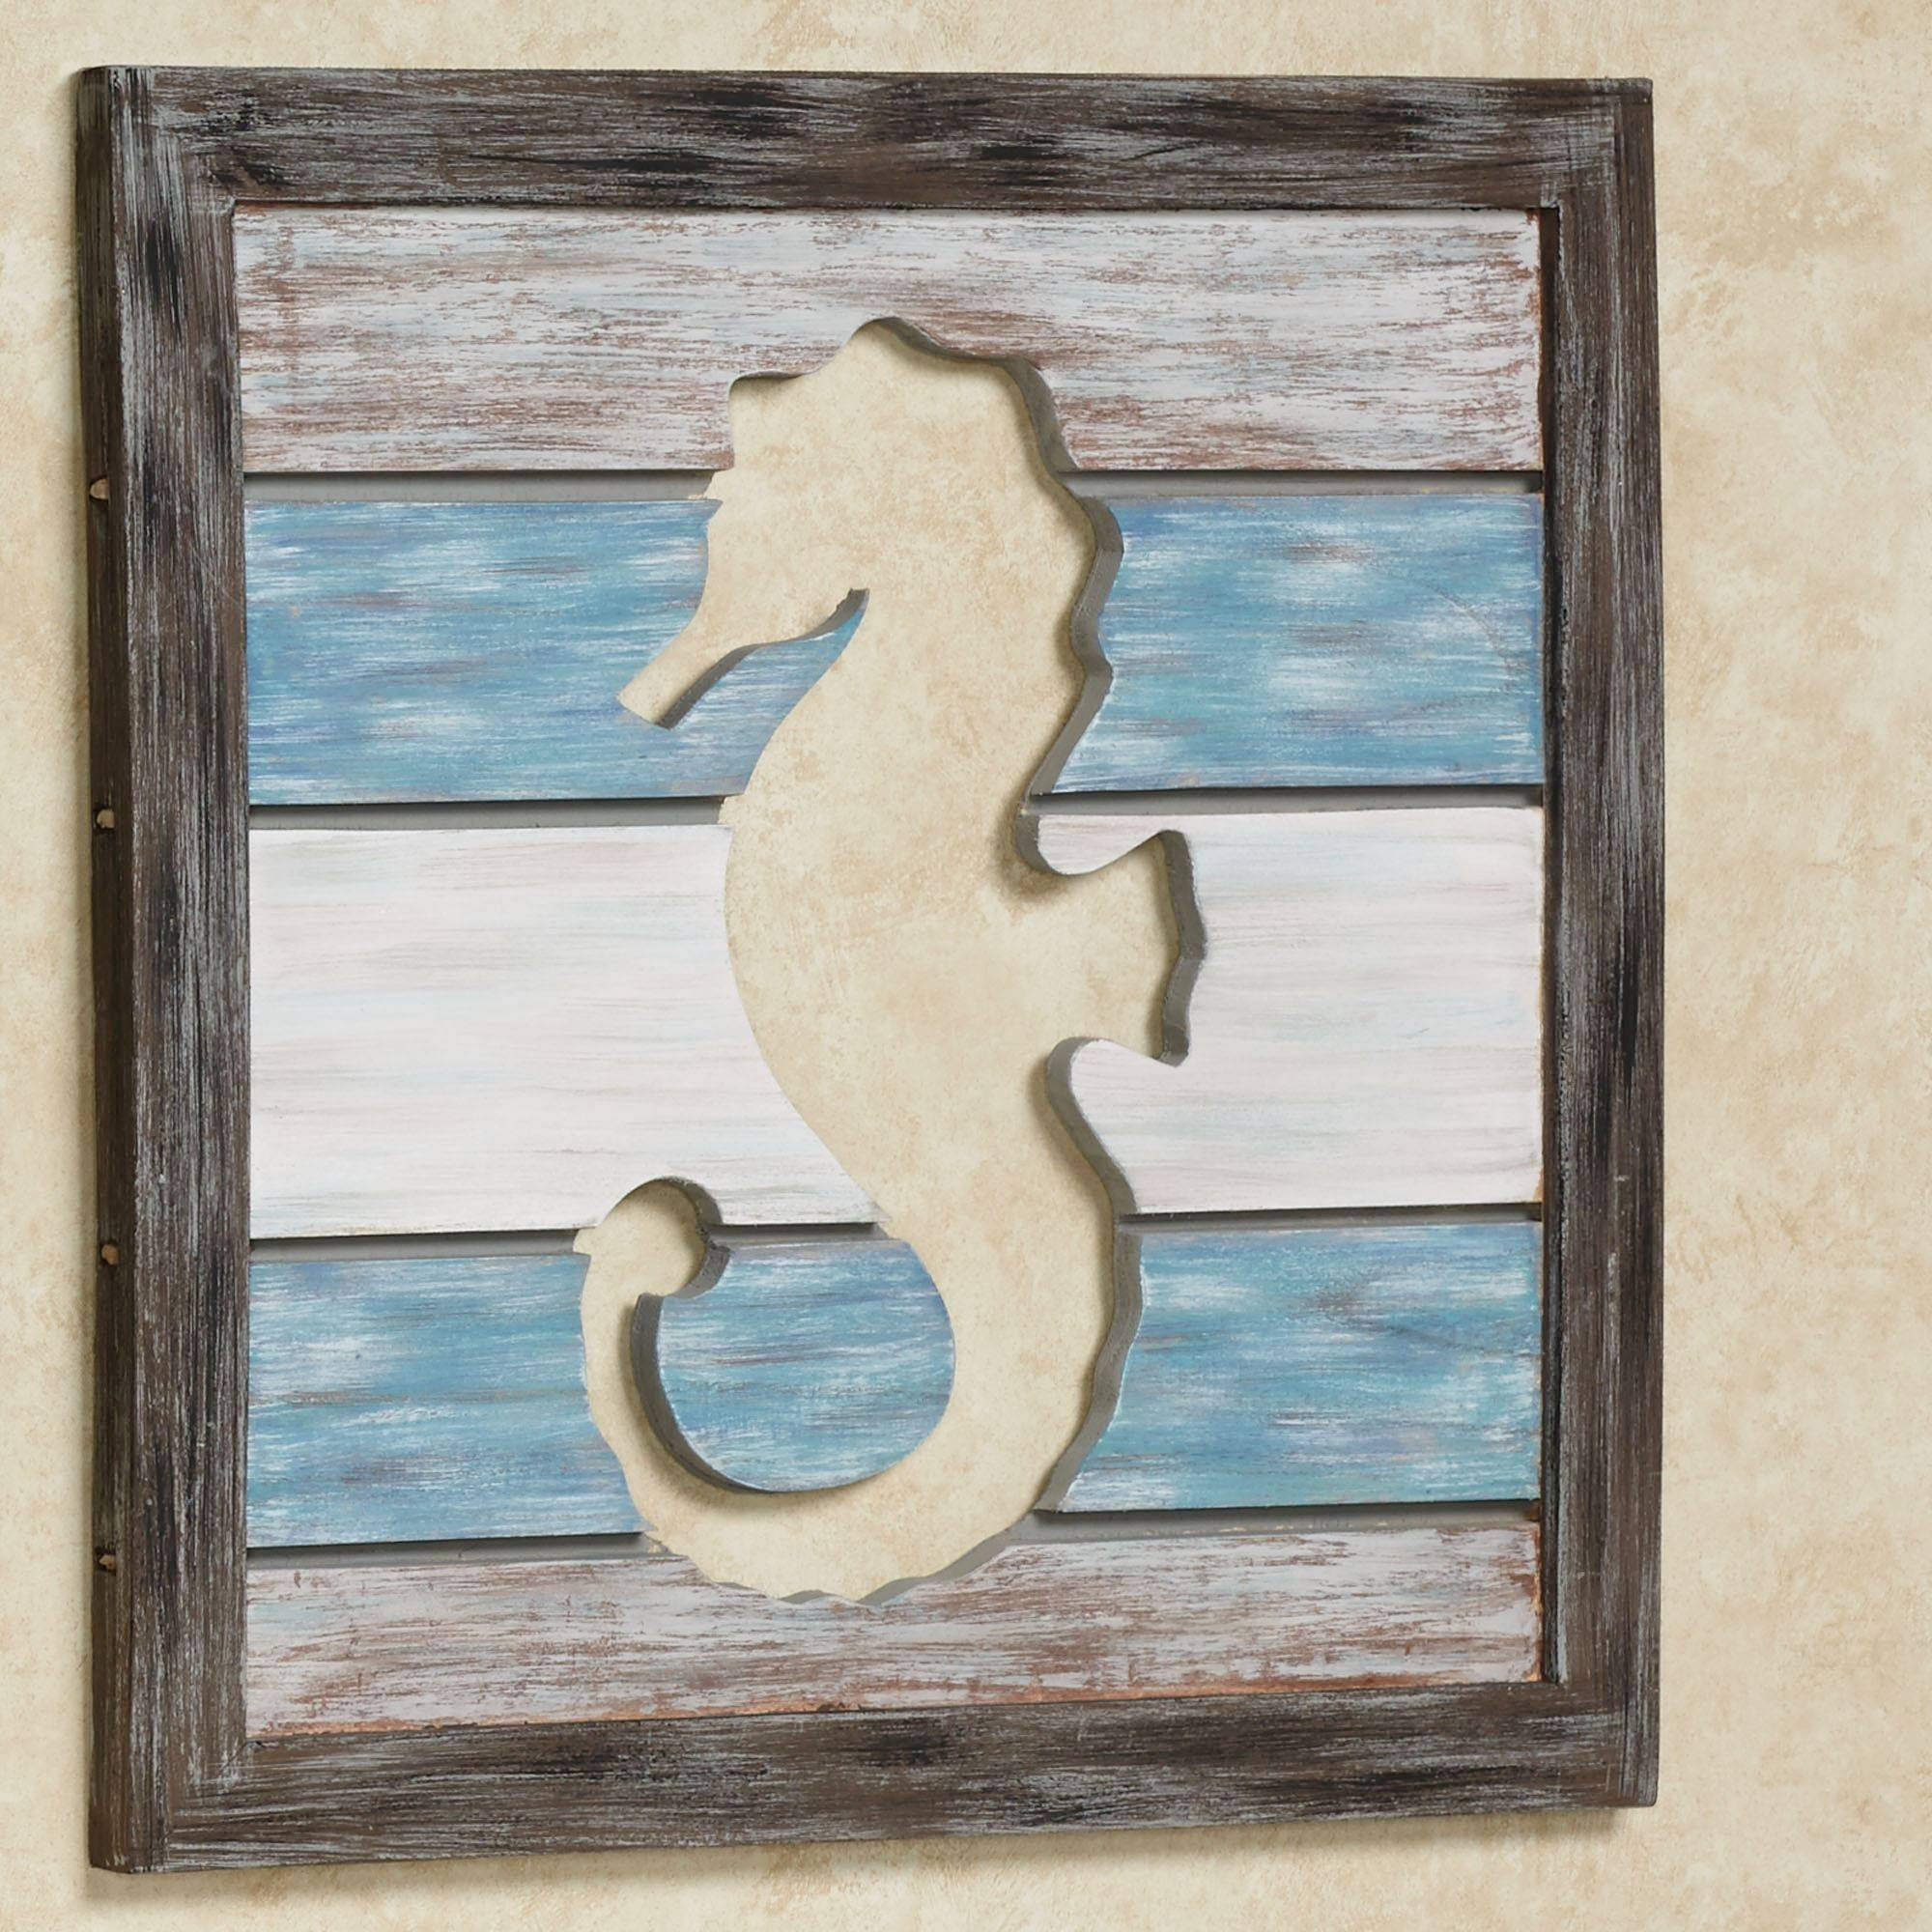 Sealife Cutout Slat Indoor Outdoor Coastal Wall Art Pertaining To Most Popular Outdoor Coastal Wall Art (View 18 of 20)